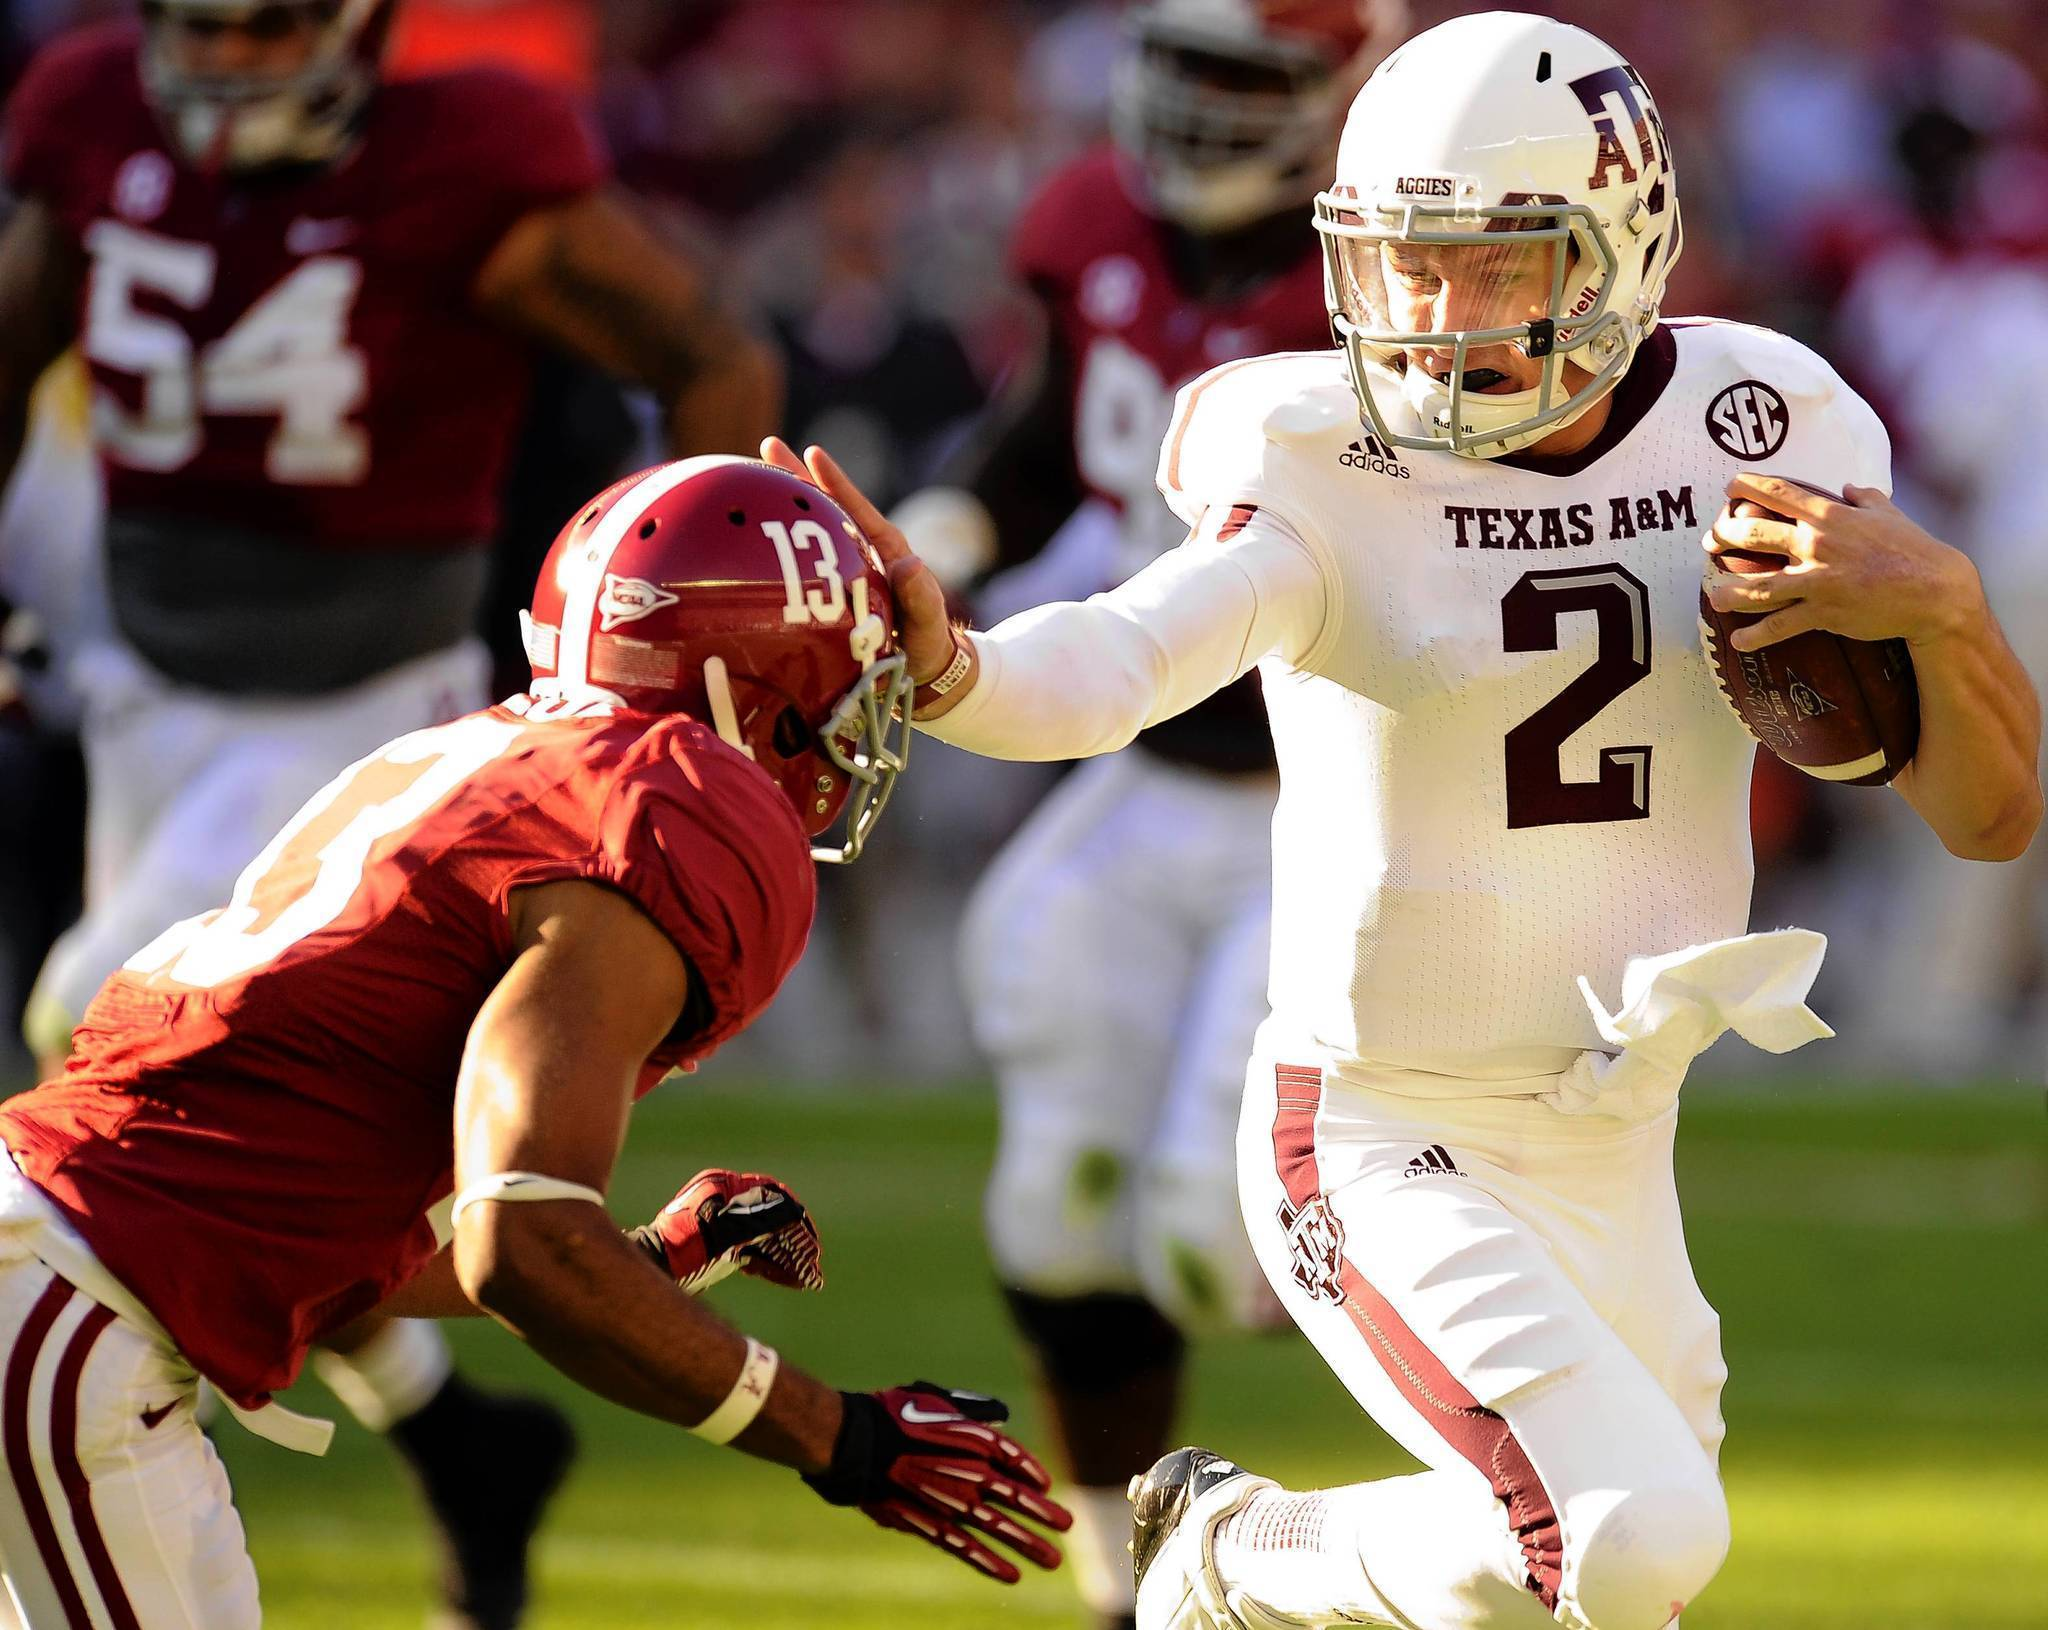 1661c0b38 Texas A M should be held accountable for Johnny Manziel s downfall -  Orlando Sentinel